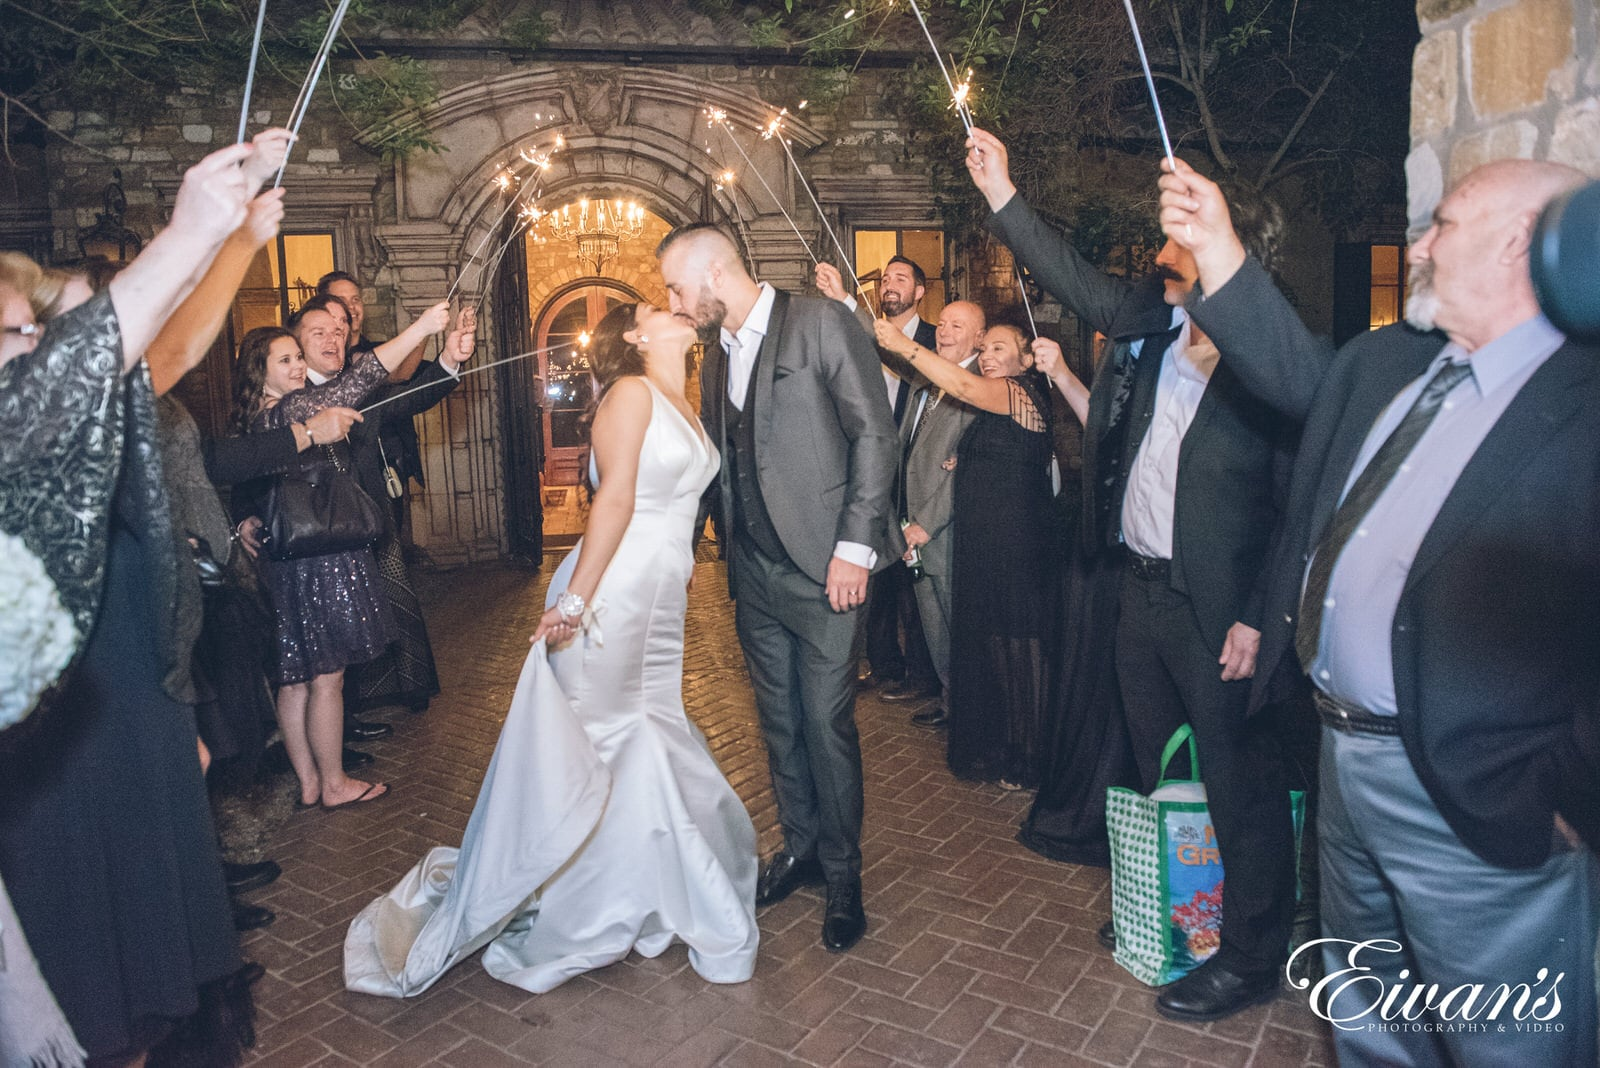 married man and woman kissing and guests are holding sprinklers